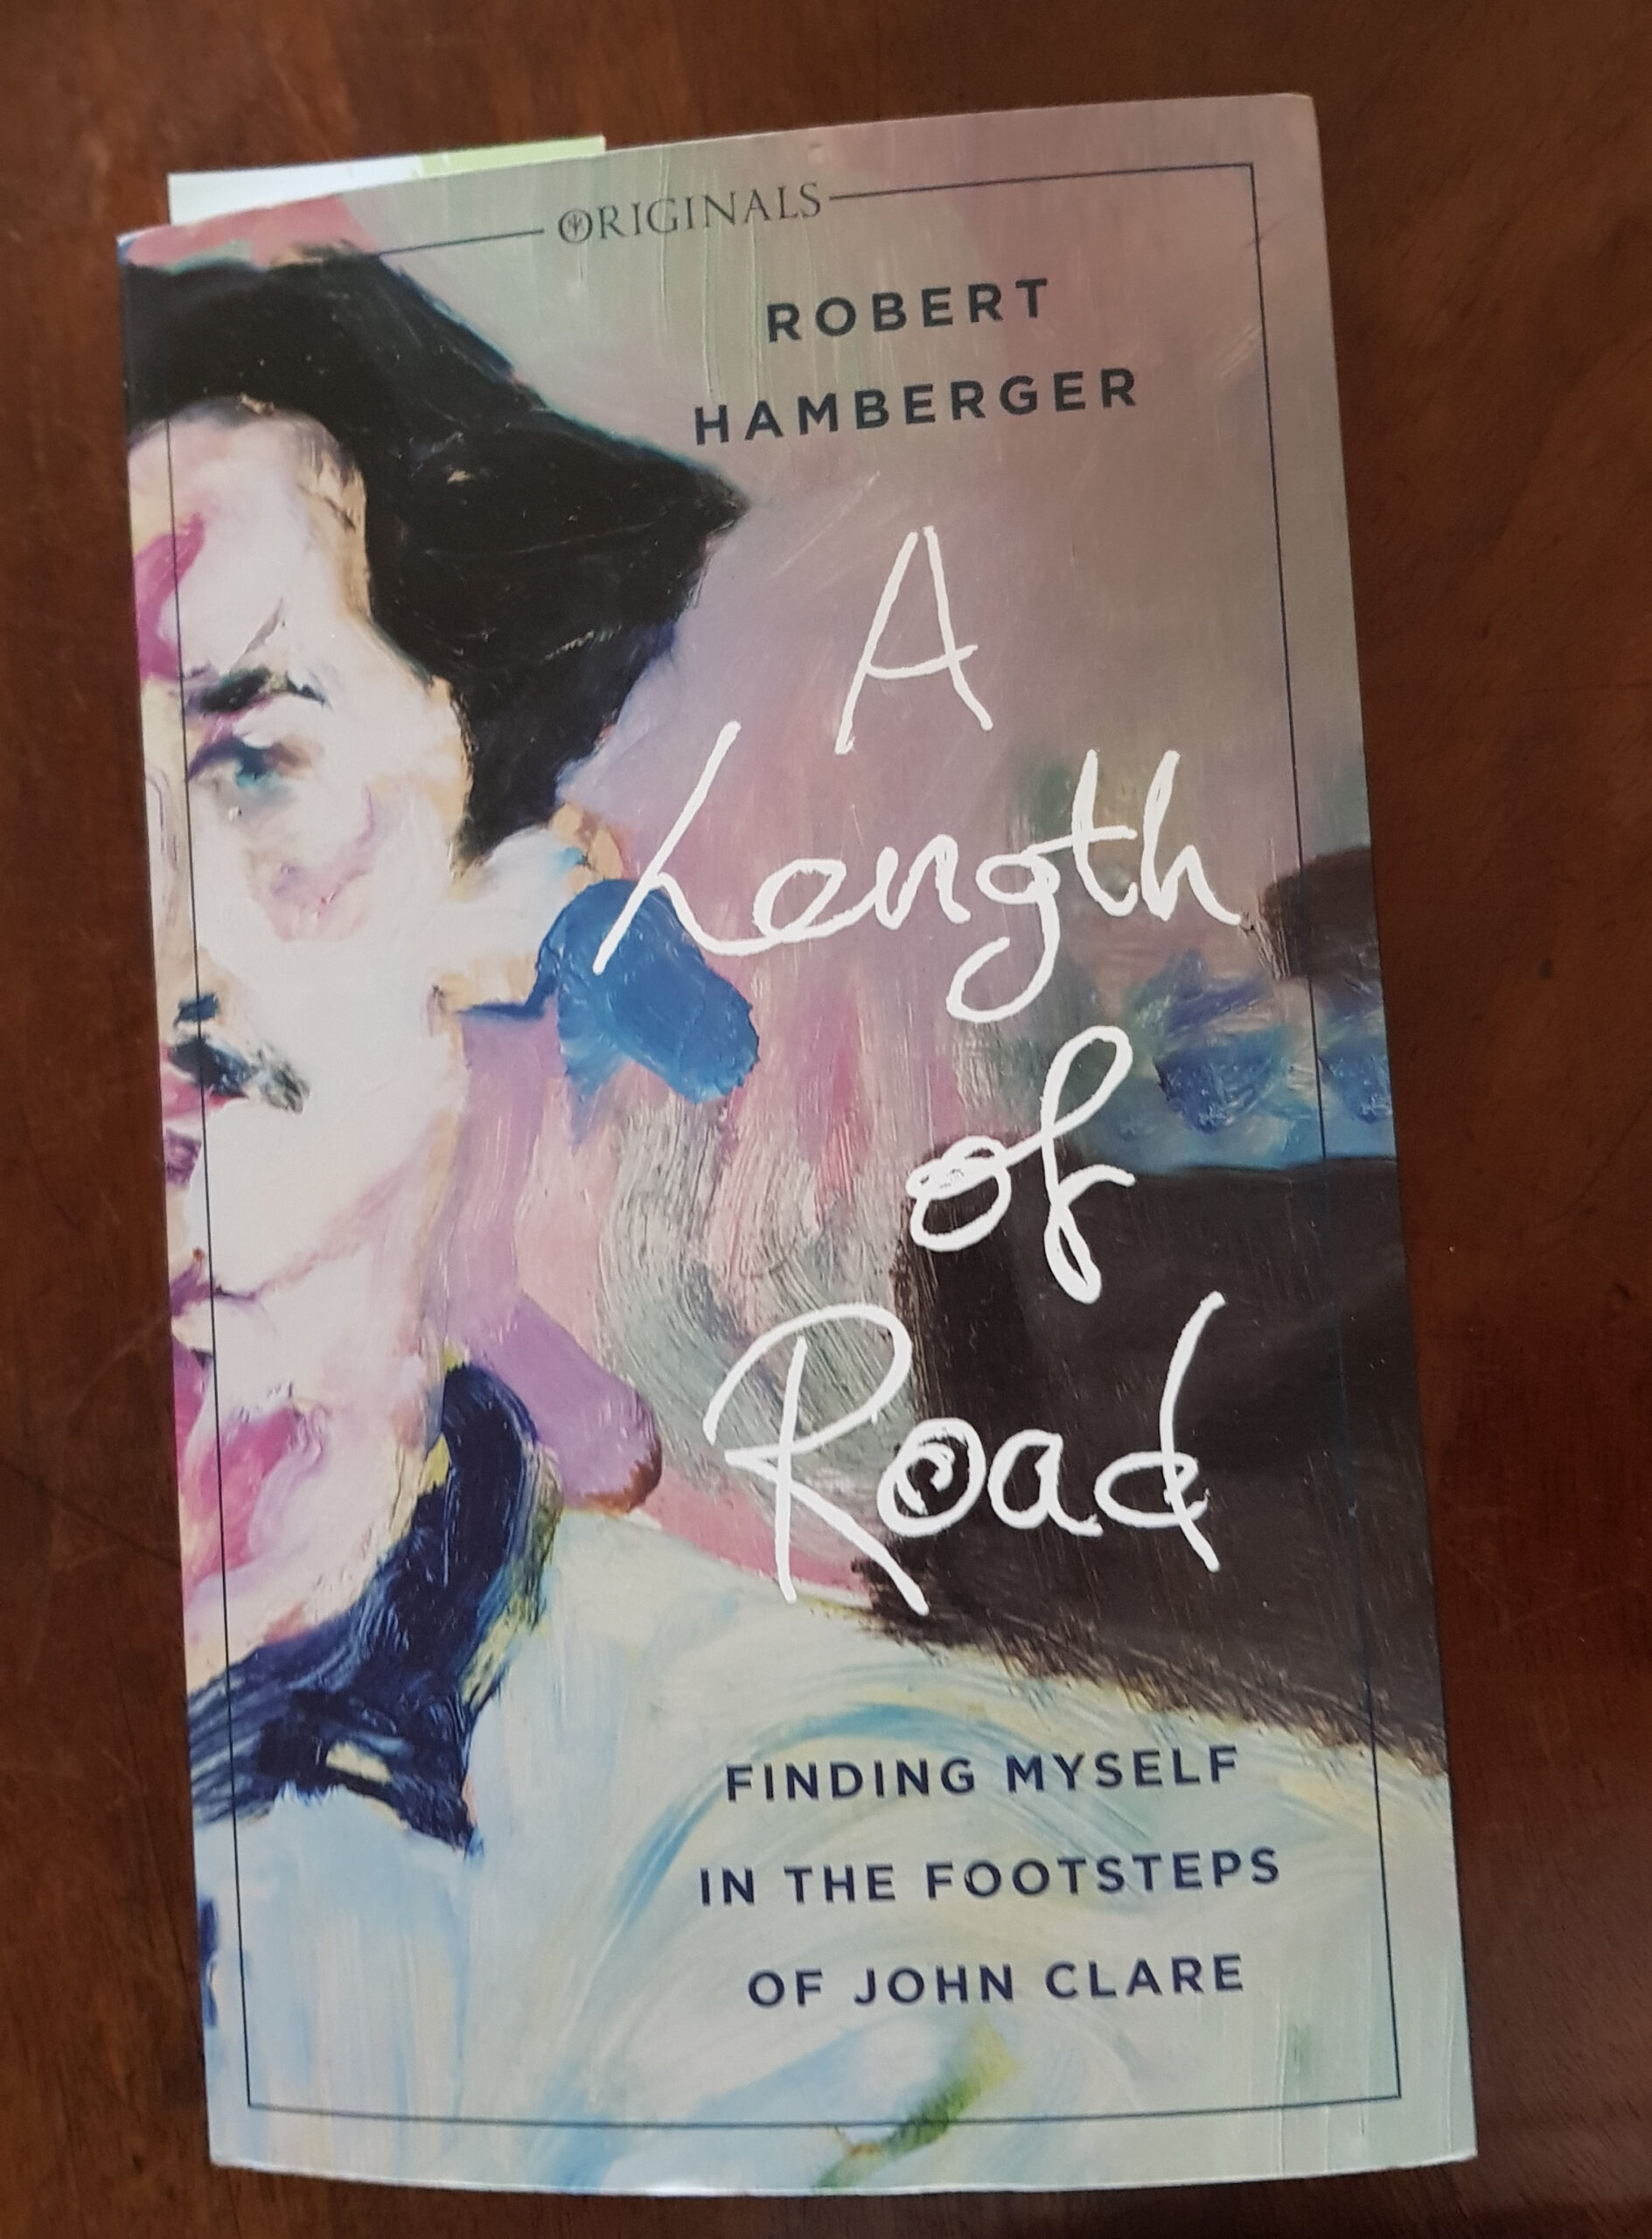 A Length of Road by Robert Hamberger